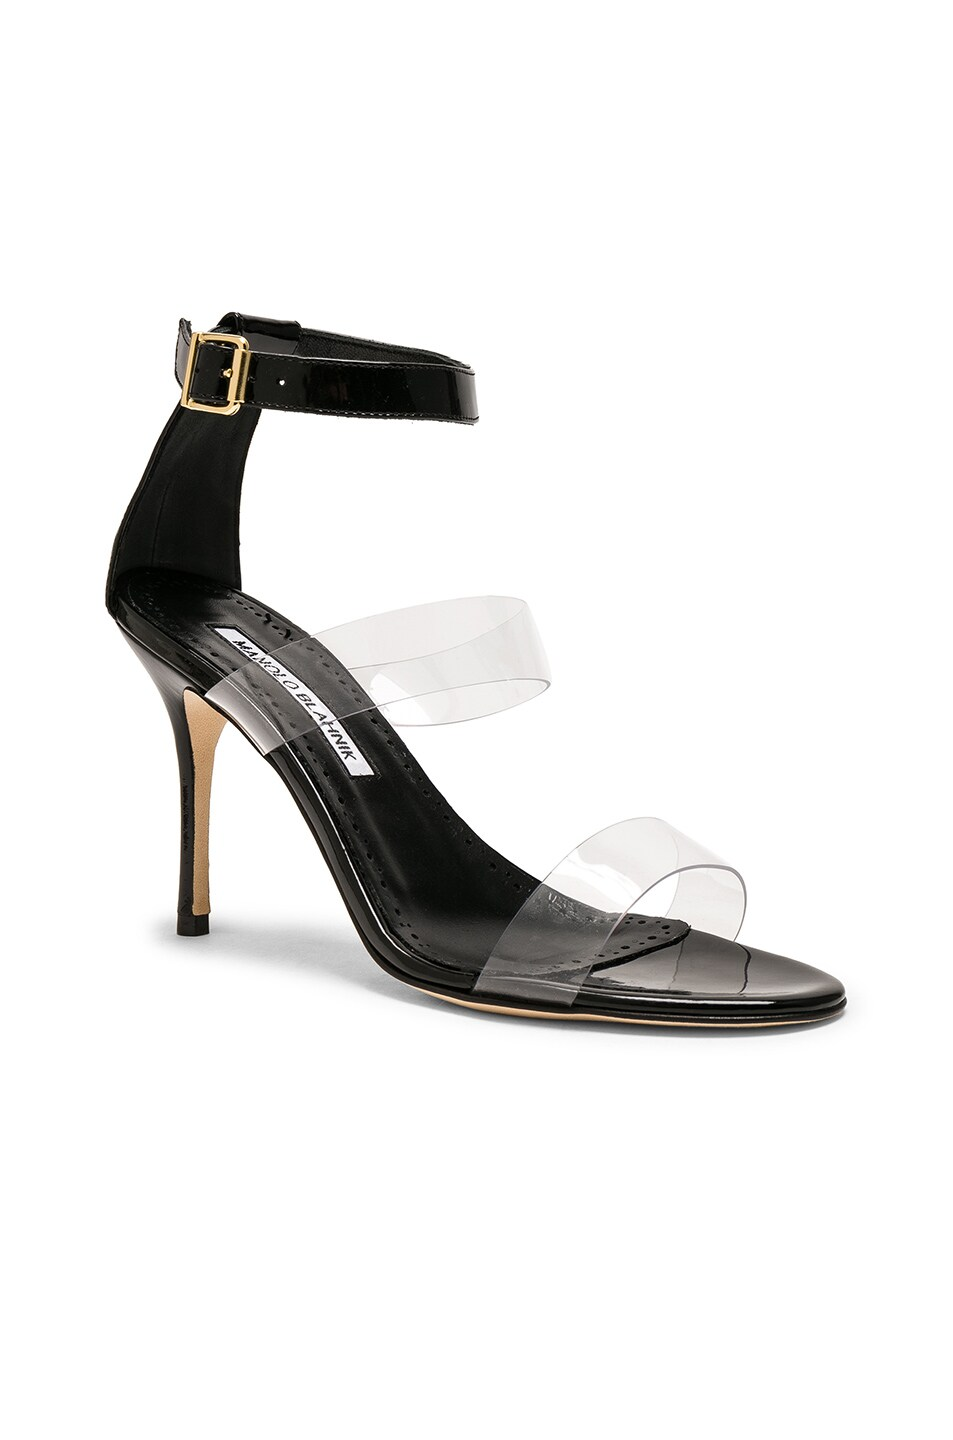 Image 2 of Manolo Blahnik Patent Leather & PVC Kaotic 90 Sandals in Black Patent & Clear PVC